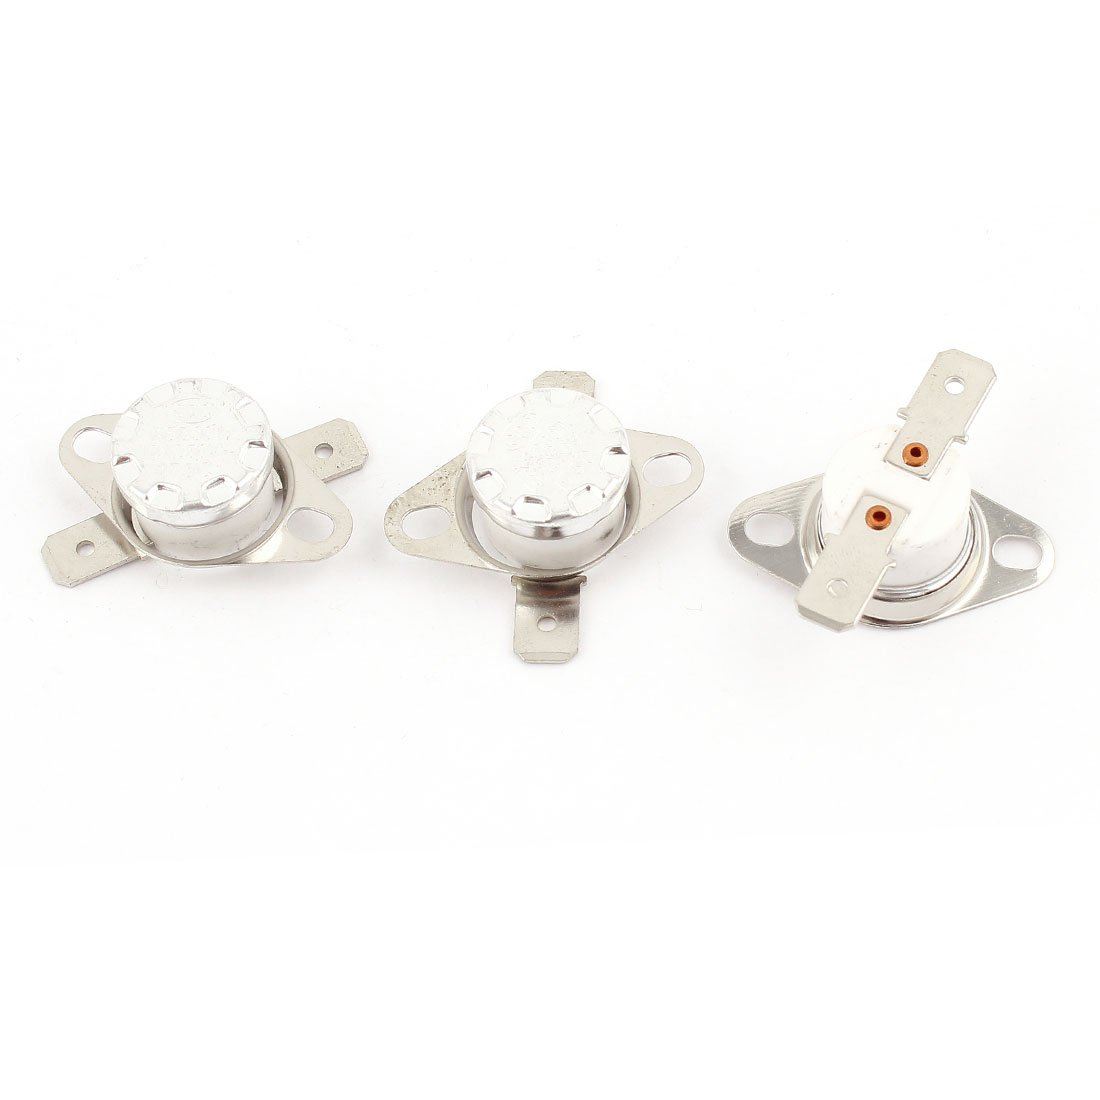 uxcell 3 Pcs KSD301 NC Temperature Switch Thermostat 175 Celsius 250V 10A SYNCF1001621